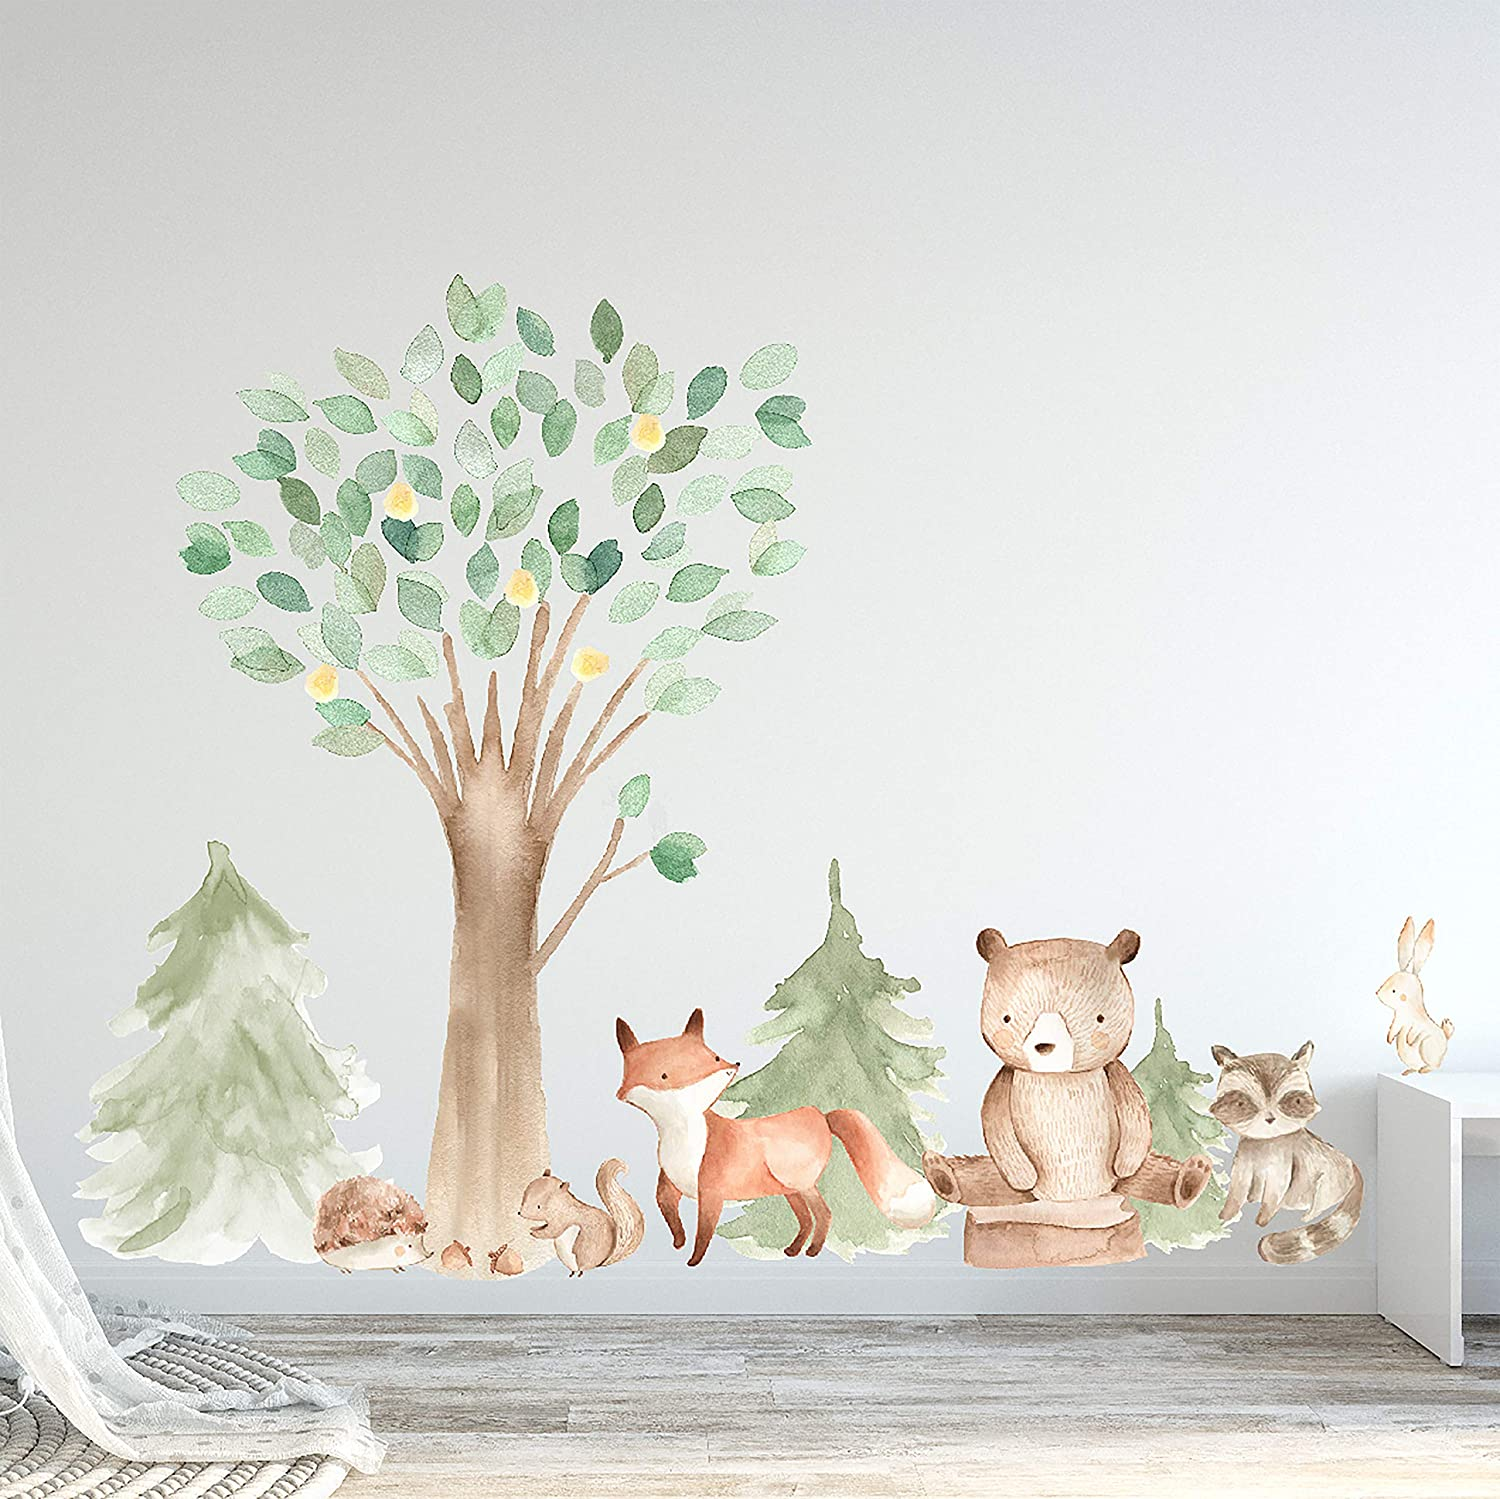 Woodland Watercolor Wall Decal New color Oak Creatures Pine Beauty products Tree - Animal